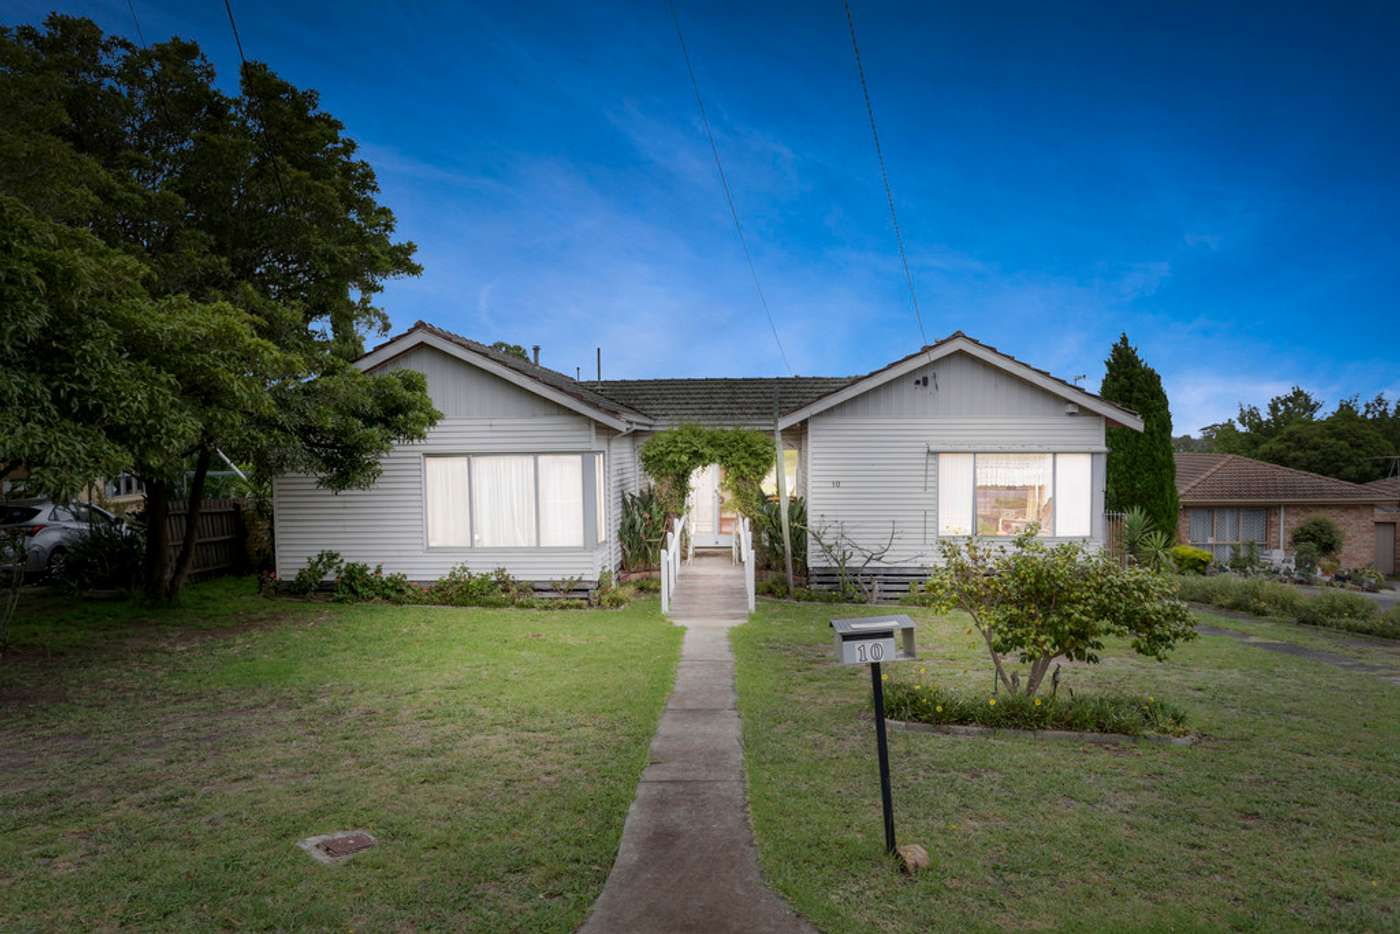 Main view of Homely house listing, 10 Ellt Crescent, Noble Park VIC 3174